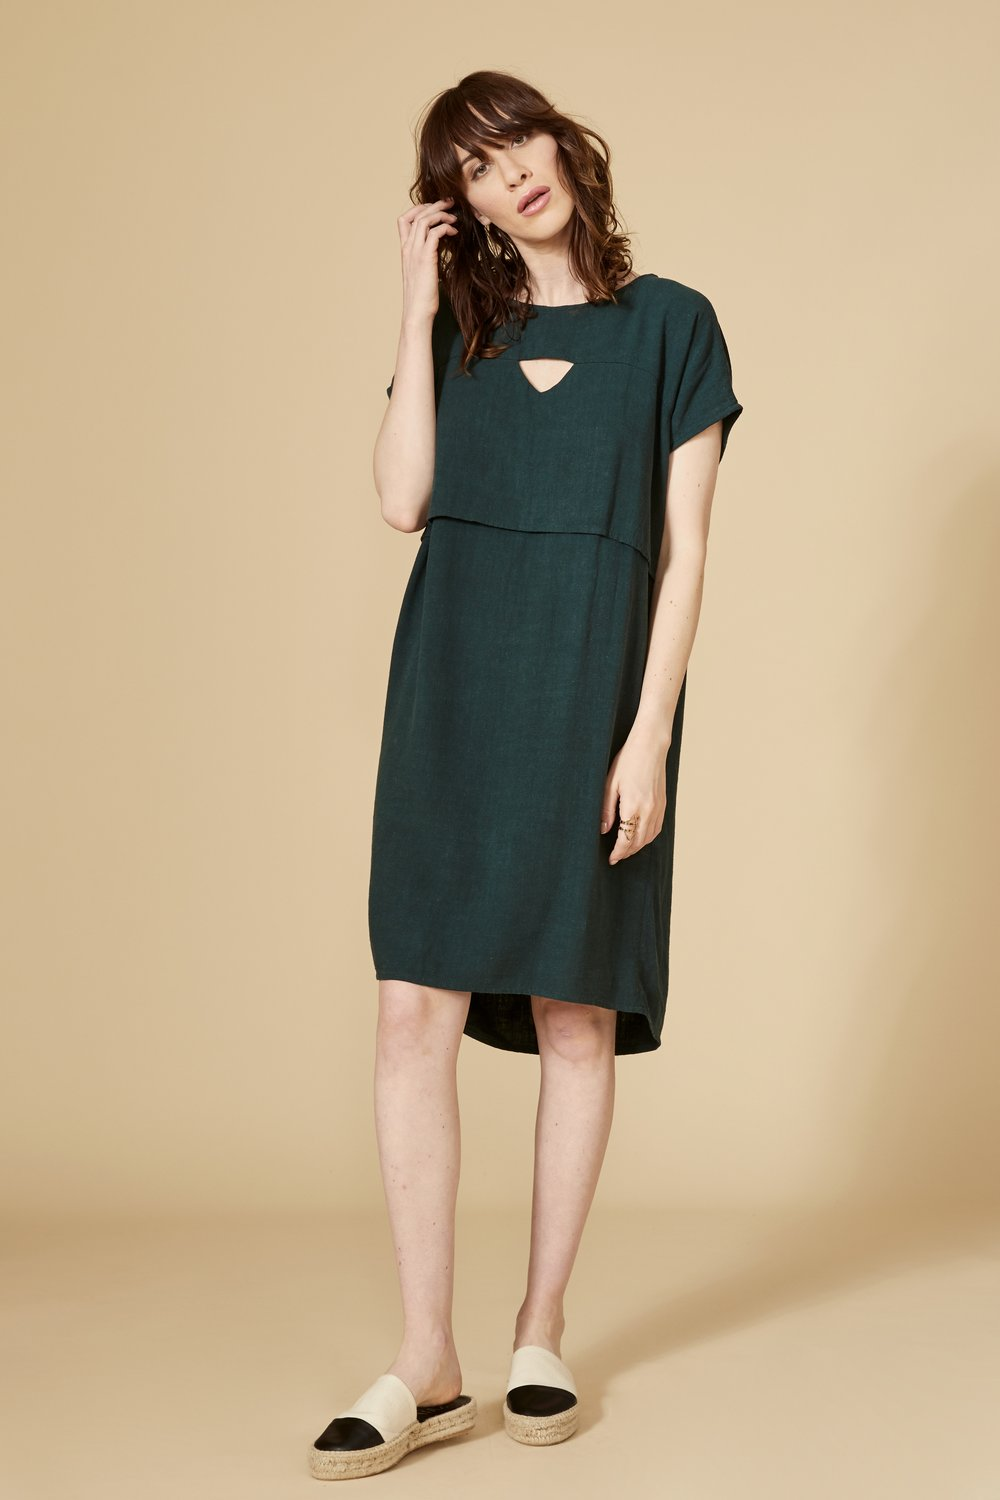 Teal cut-out dress with short sleeve, round collar and slightly longer at the back. 70% viscose, 30% linen. Hand wash in cold water, air dry flat. Designed and Made in Montréal.